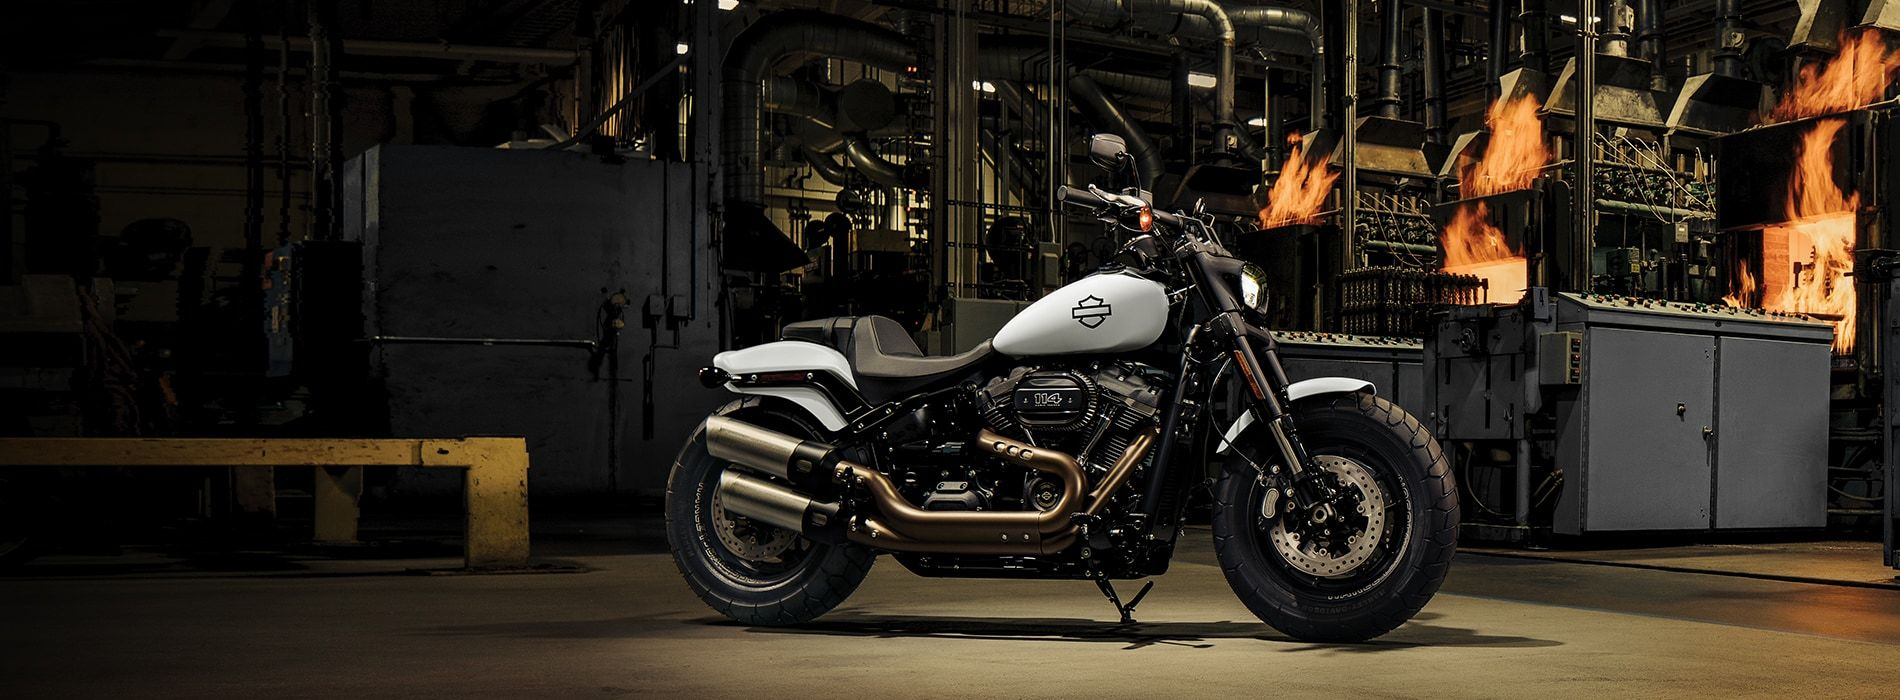 2018 Harley-Davidson Fat Bob Wallpaper